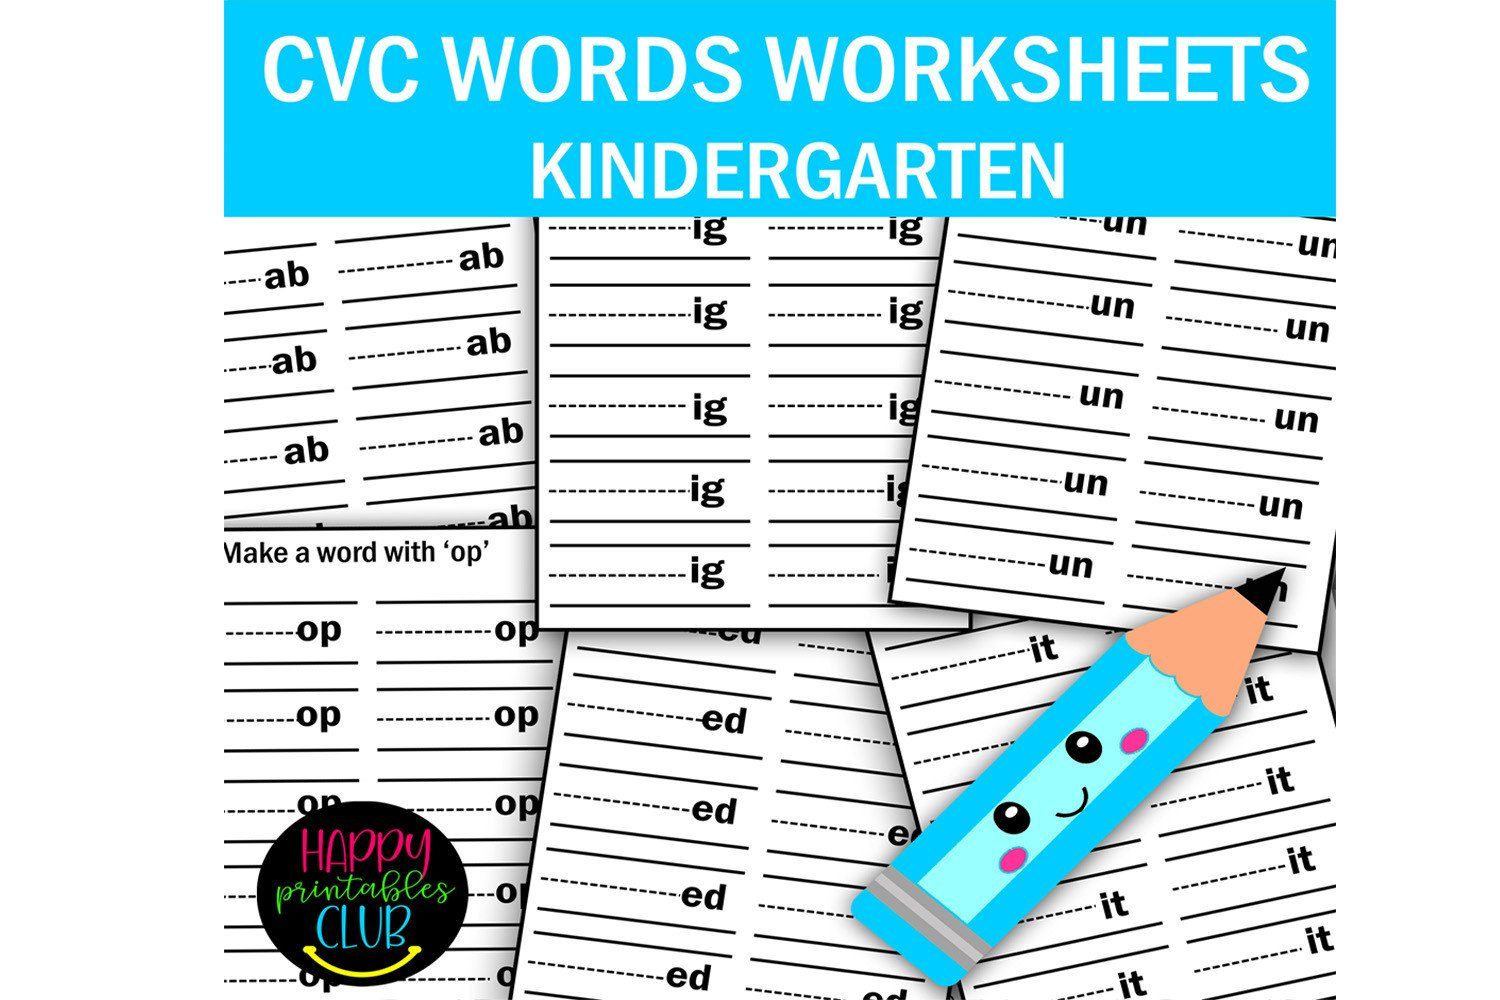 Cvc Words Worksheet Kindergarten Cvc Words Worksheets Kindergarten